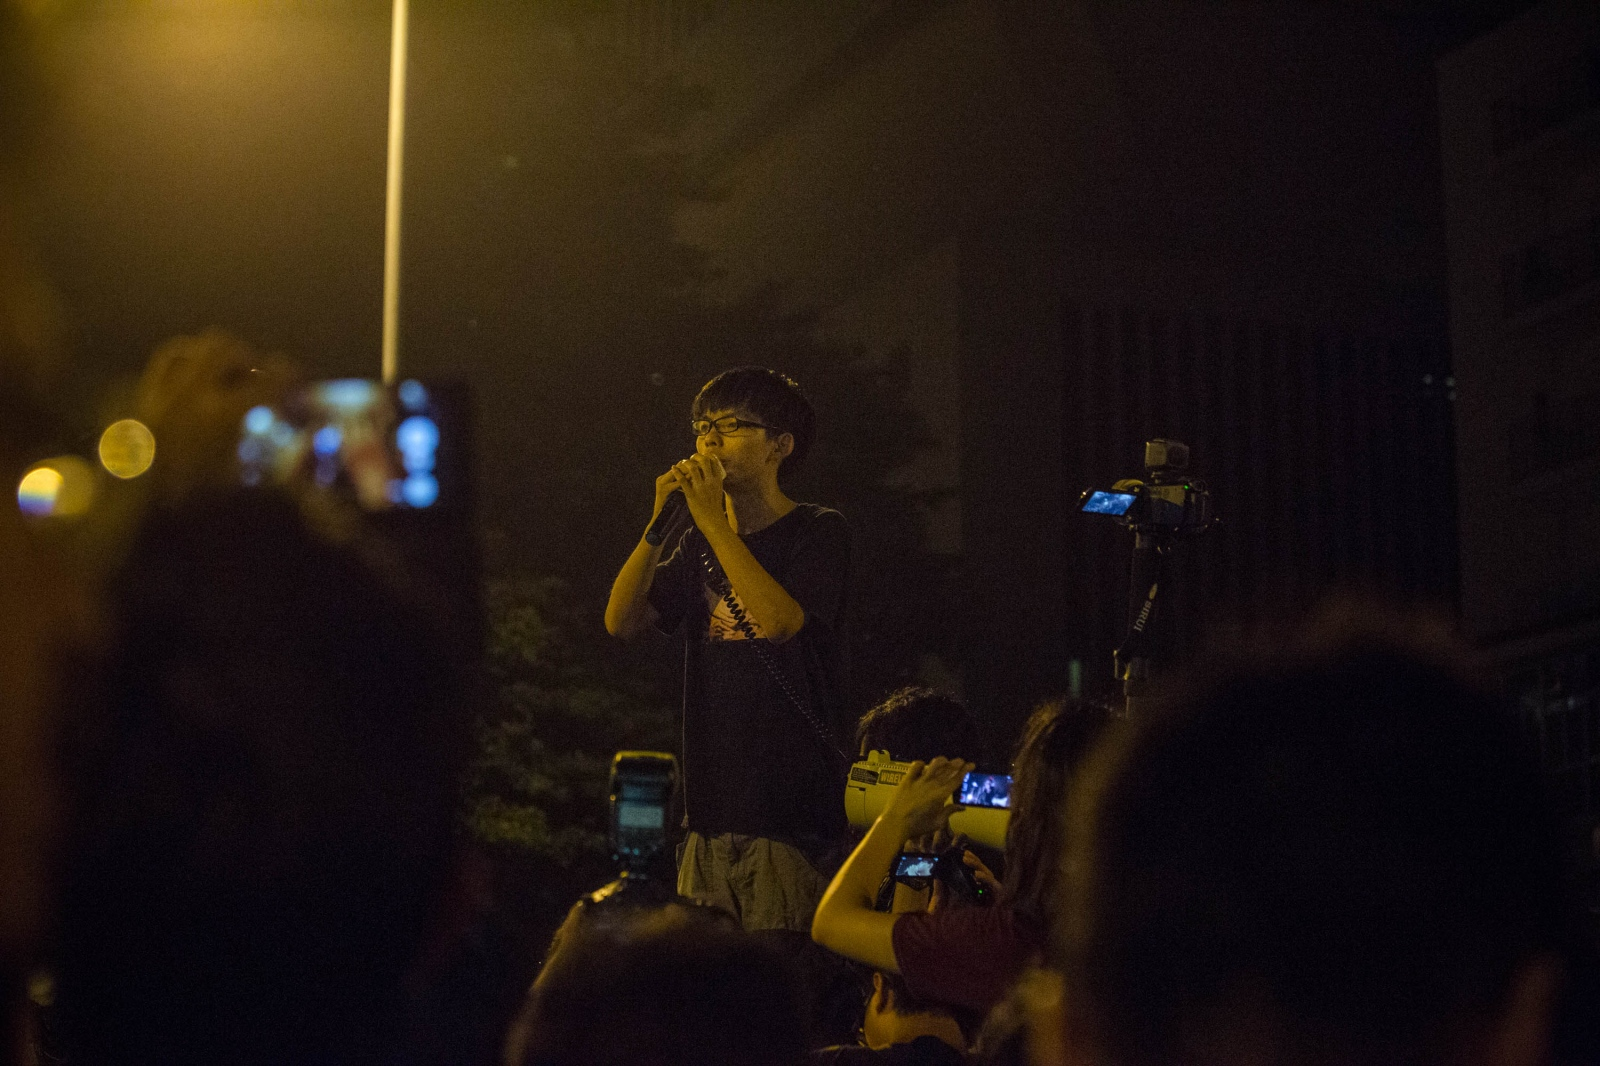 17-year-old activist Joshua Wong, founder of the group Scholarism and credited with starting the campaign of civil disobedience to advocate for universal suffrage in Hong Kong, speaks to protestors during a tense night outside the Chief Executive's office in the early hours of October 3, 2014.